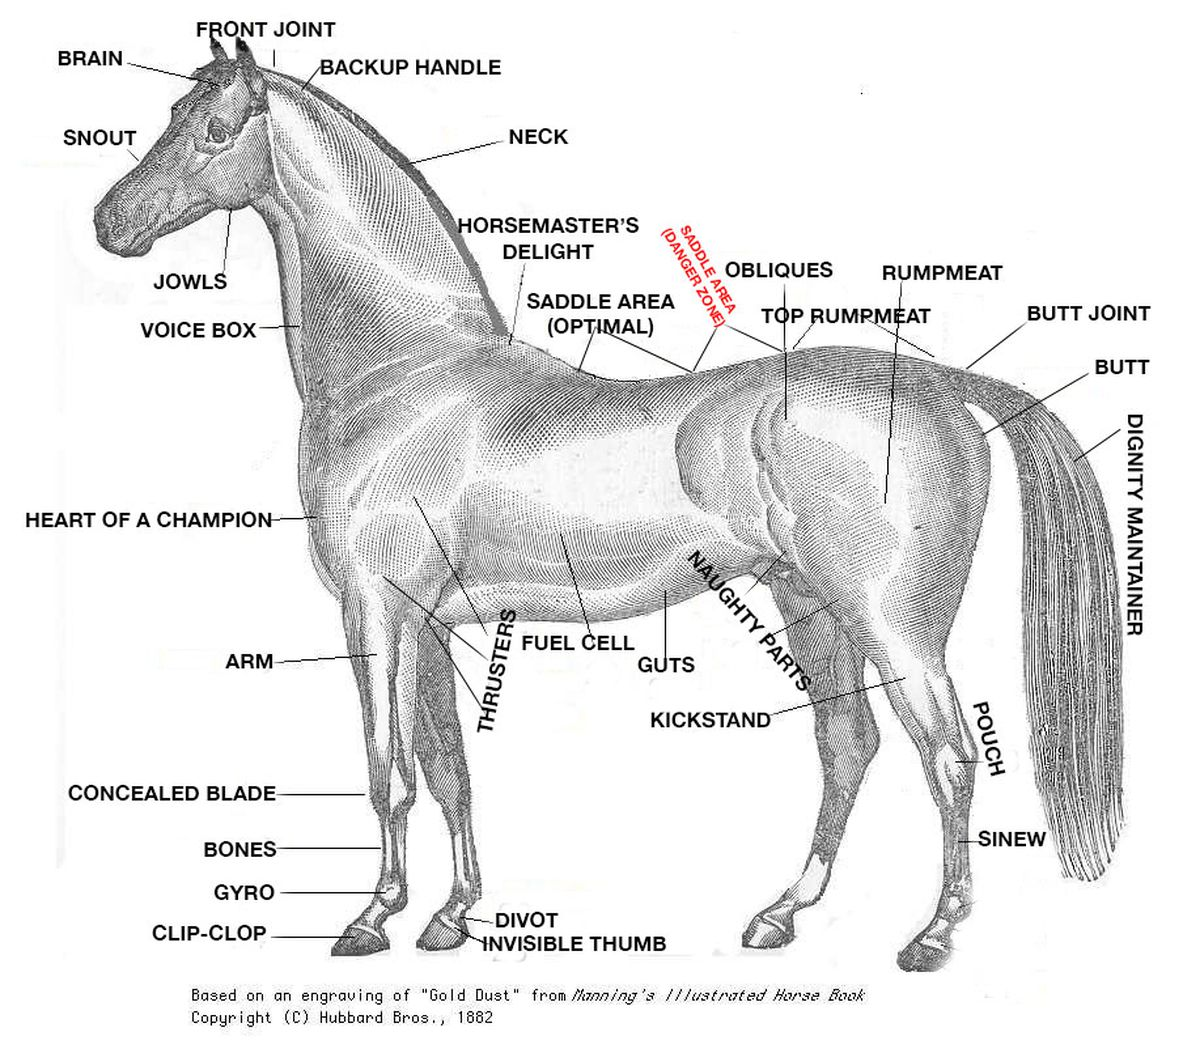 A Crash Course In Horse Anatomy For The 2015 Kentucky